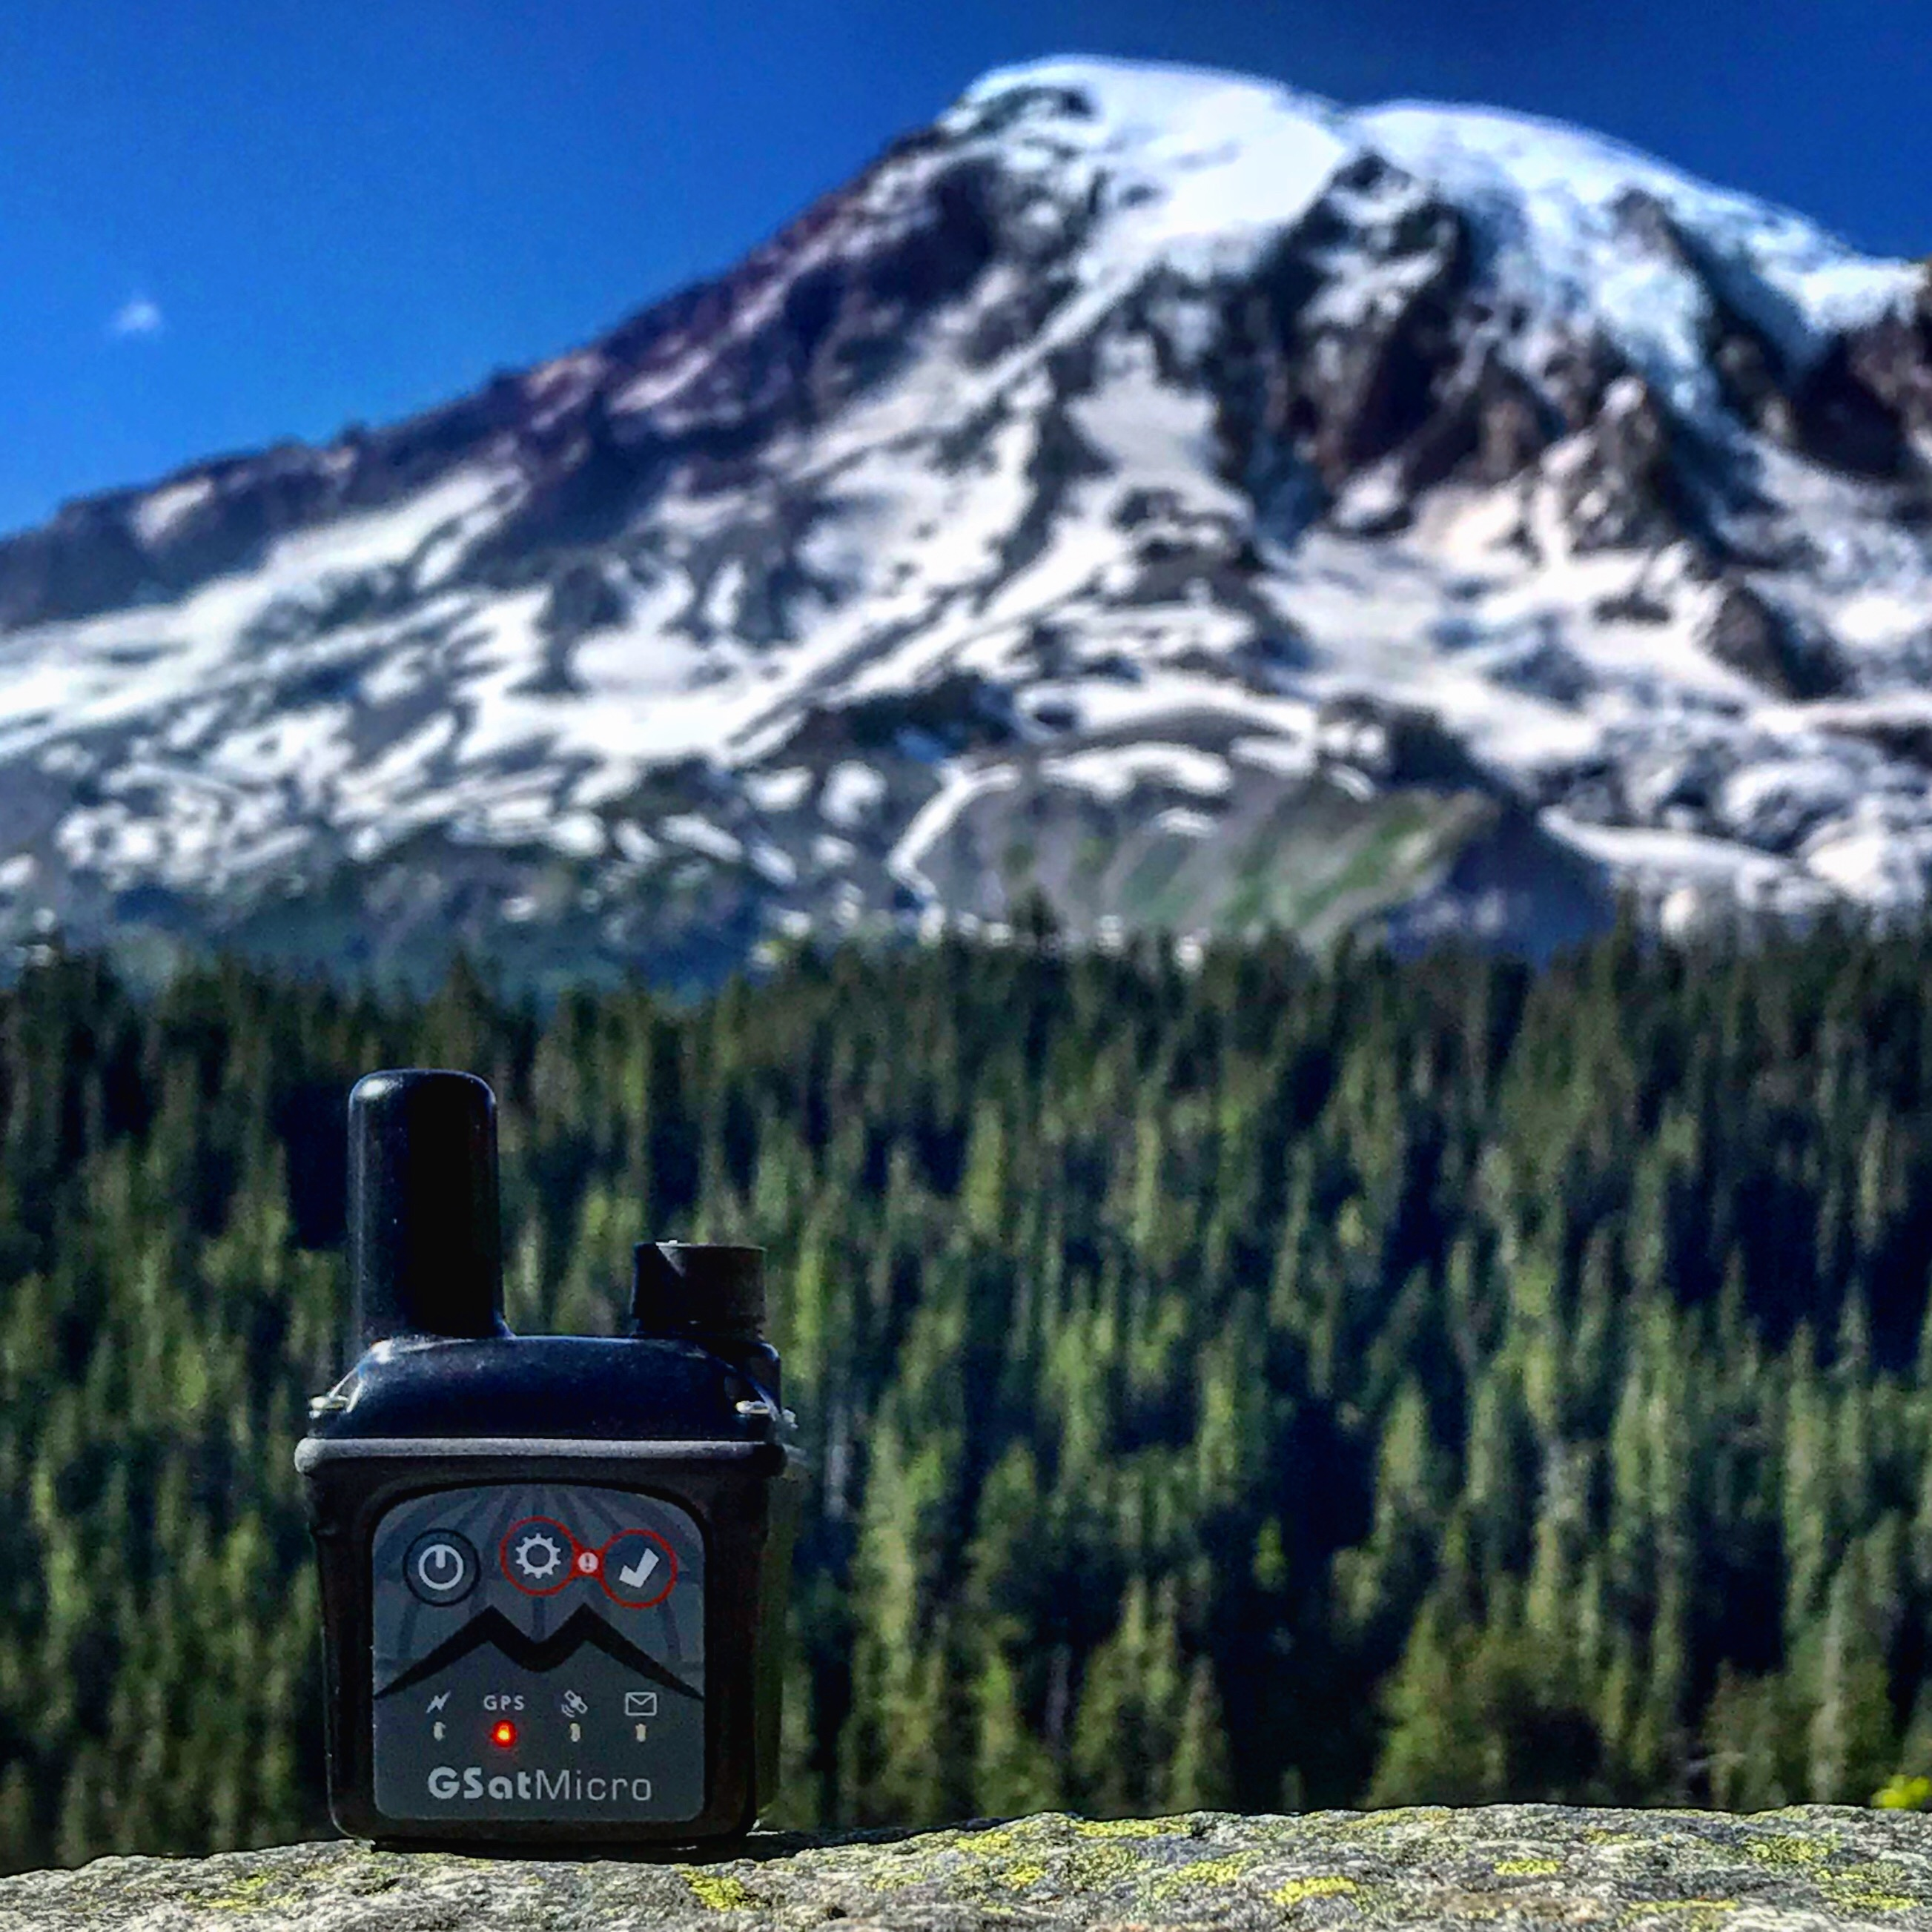 GSatMicro - Tracking at Mount Rainier, Washington